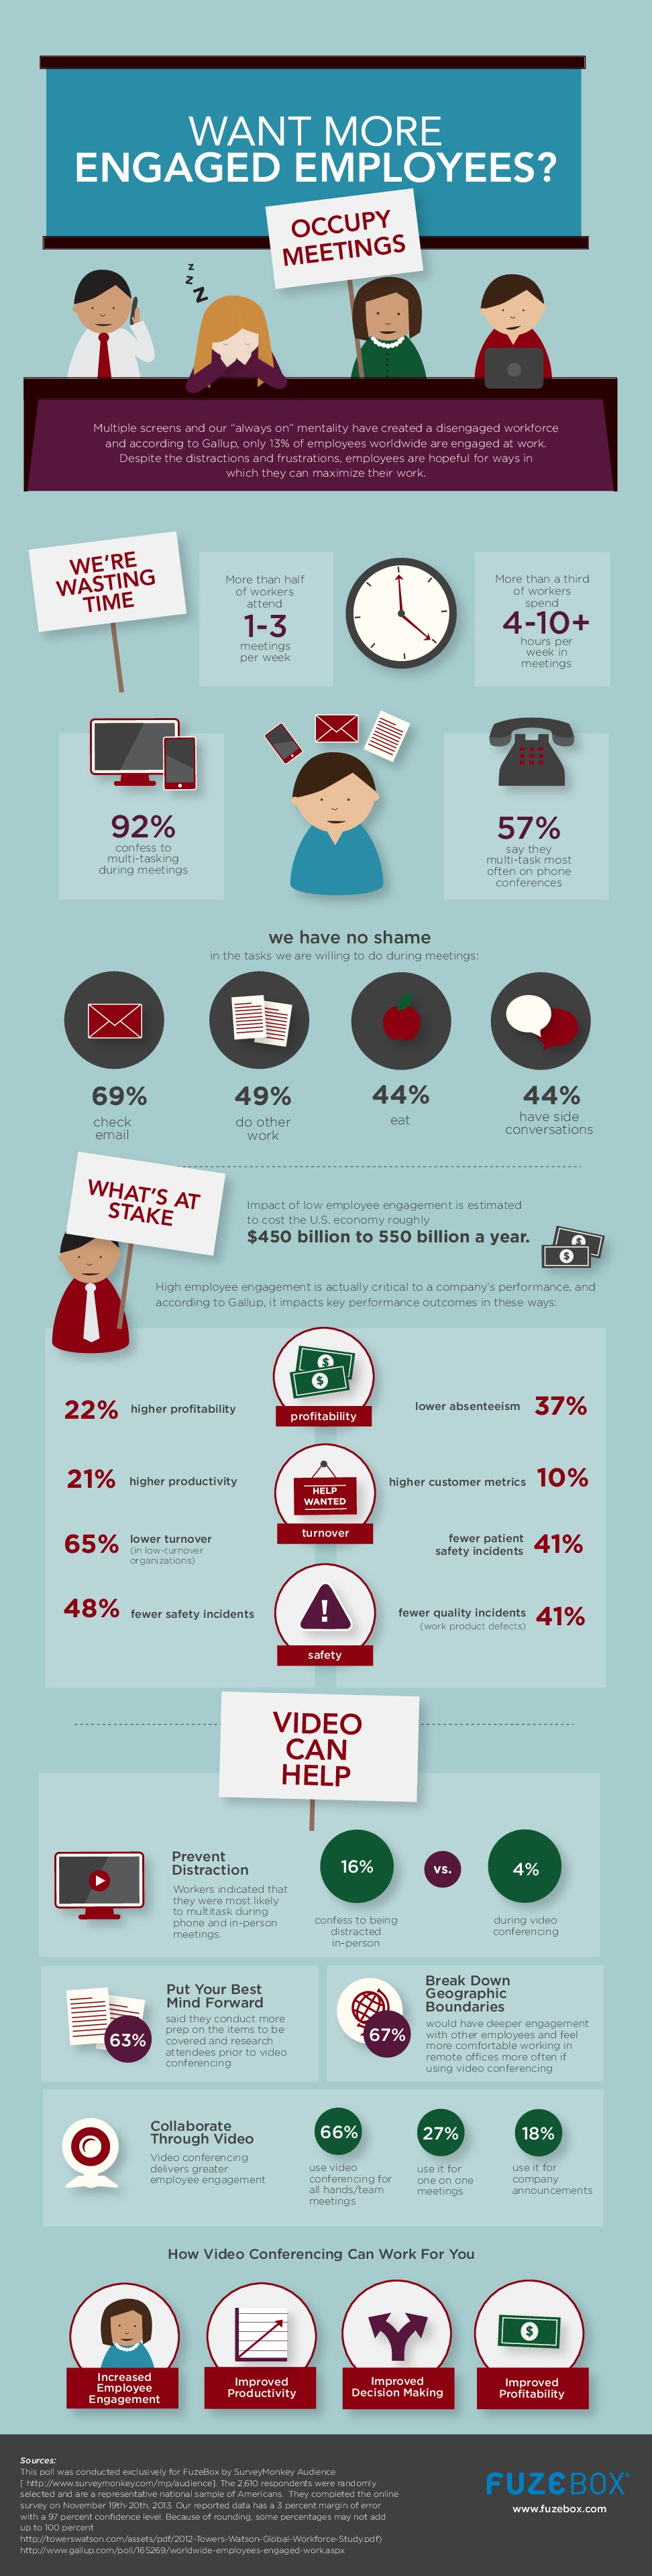 Infographic: Want More Engaged Employees?